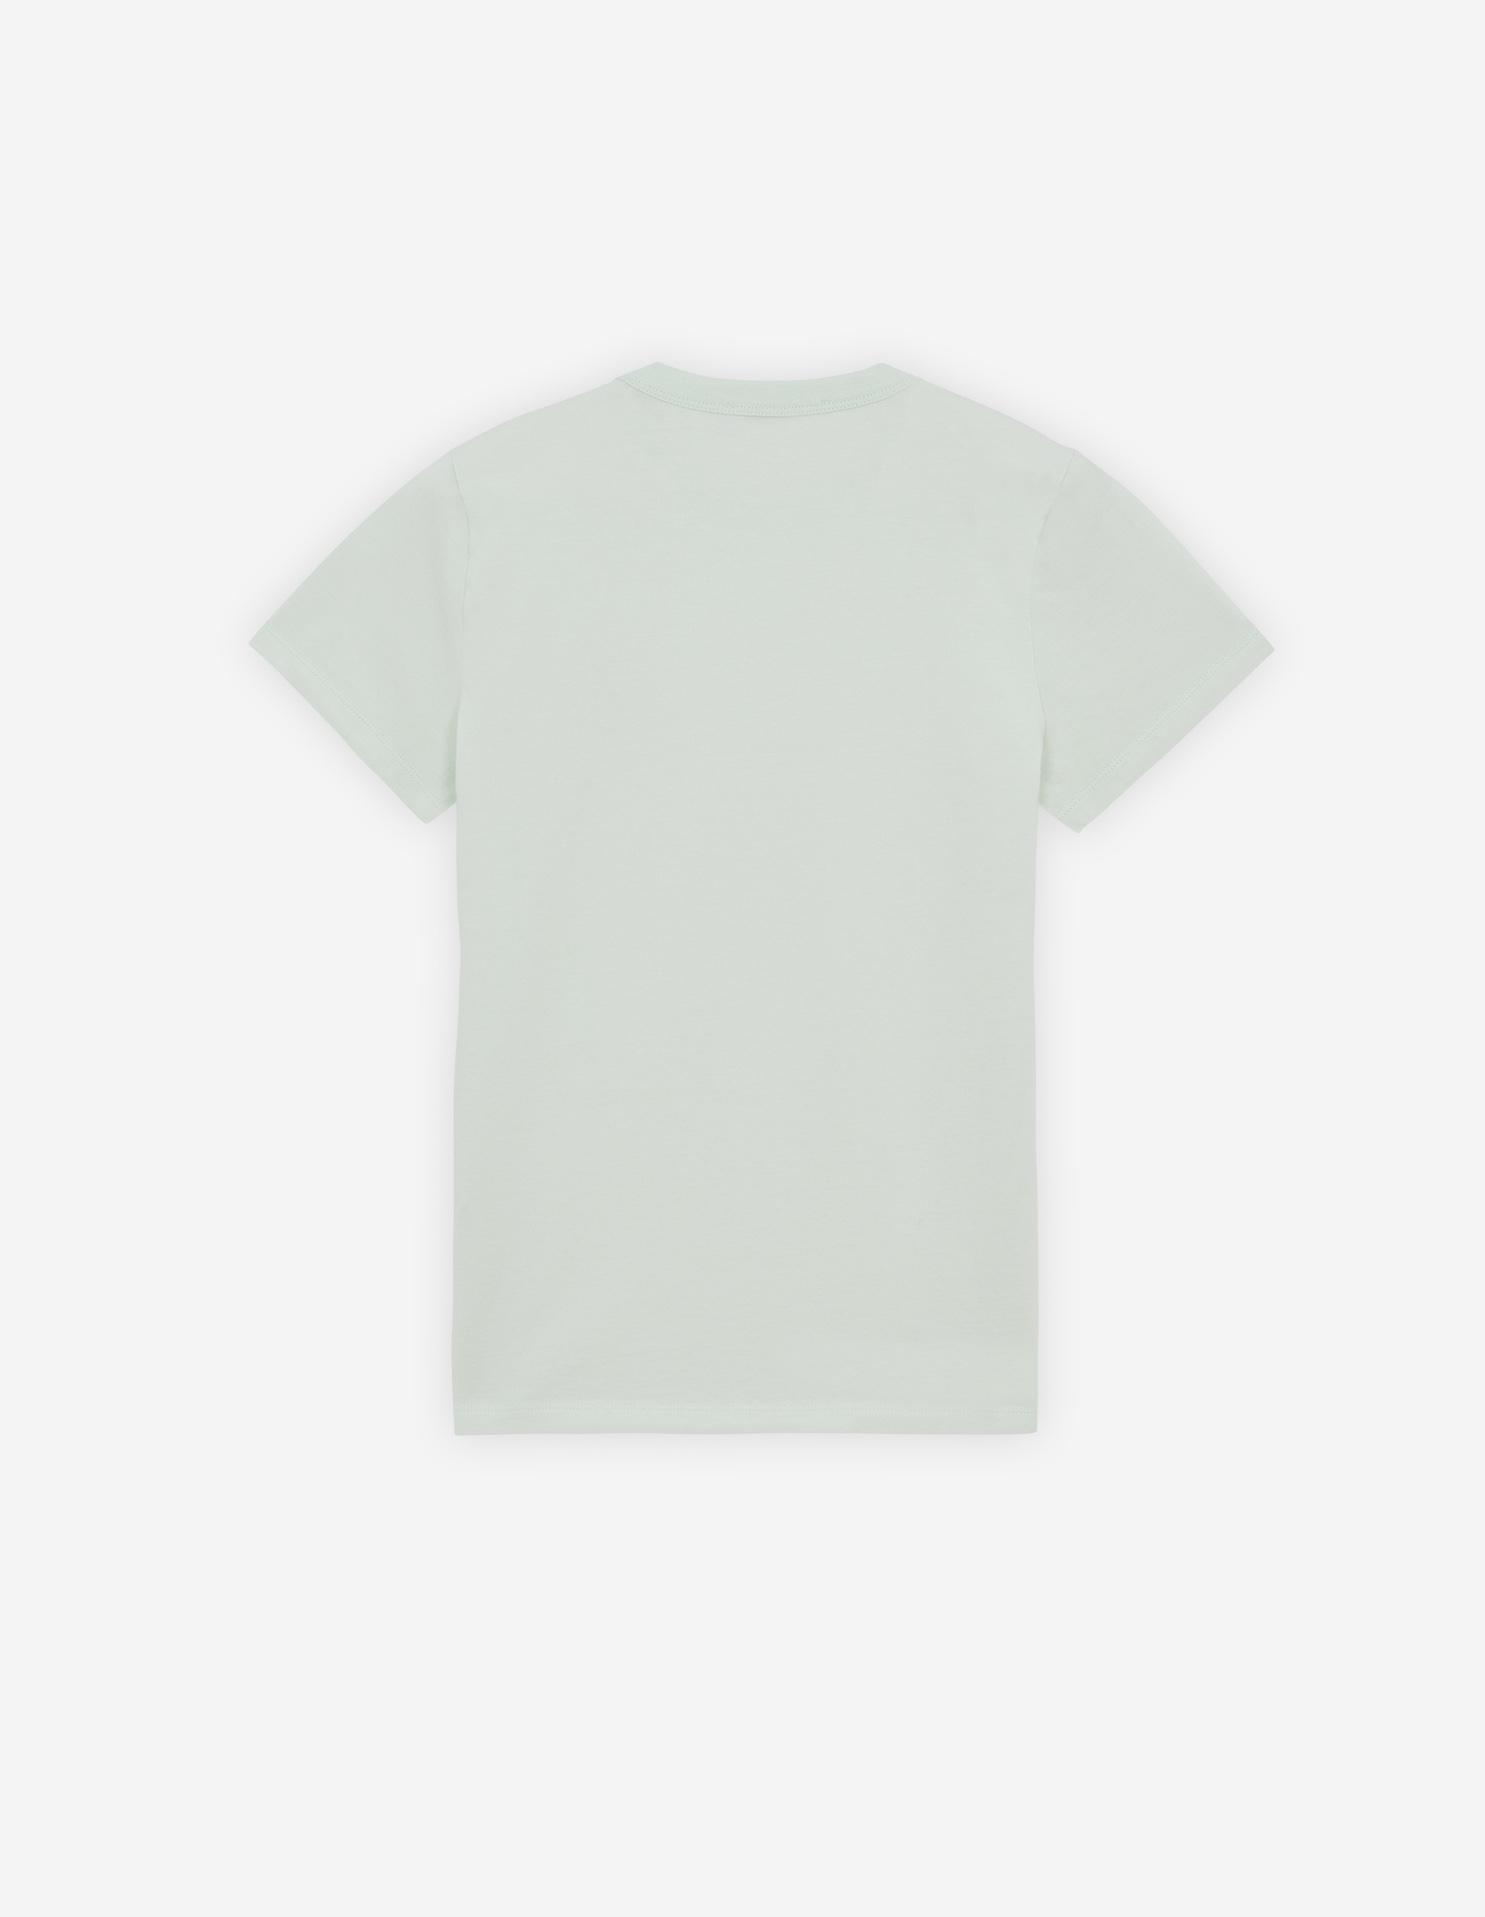 ALL RIGHT FOX PATCH CLASSIC TEE-SHIRT 1